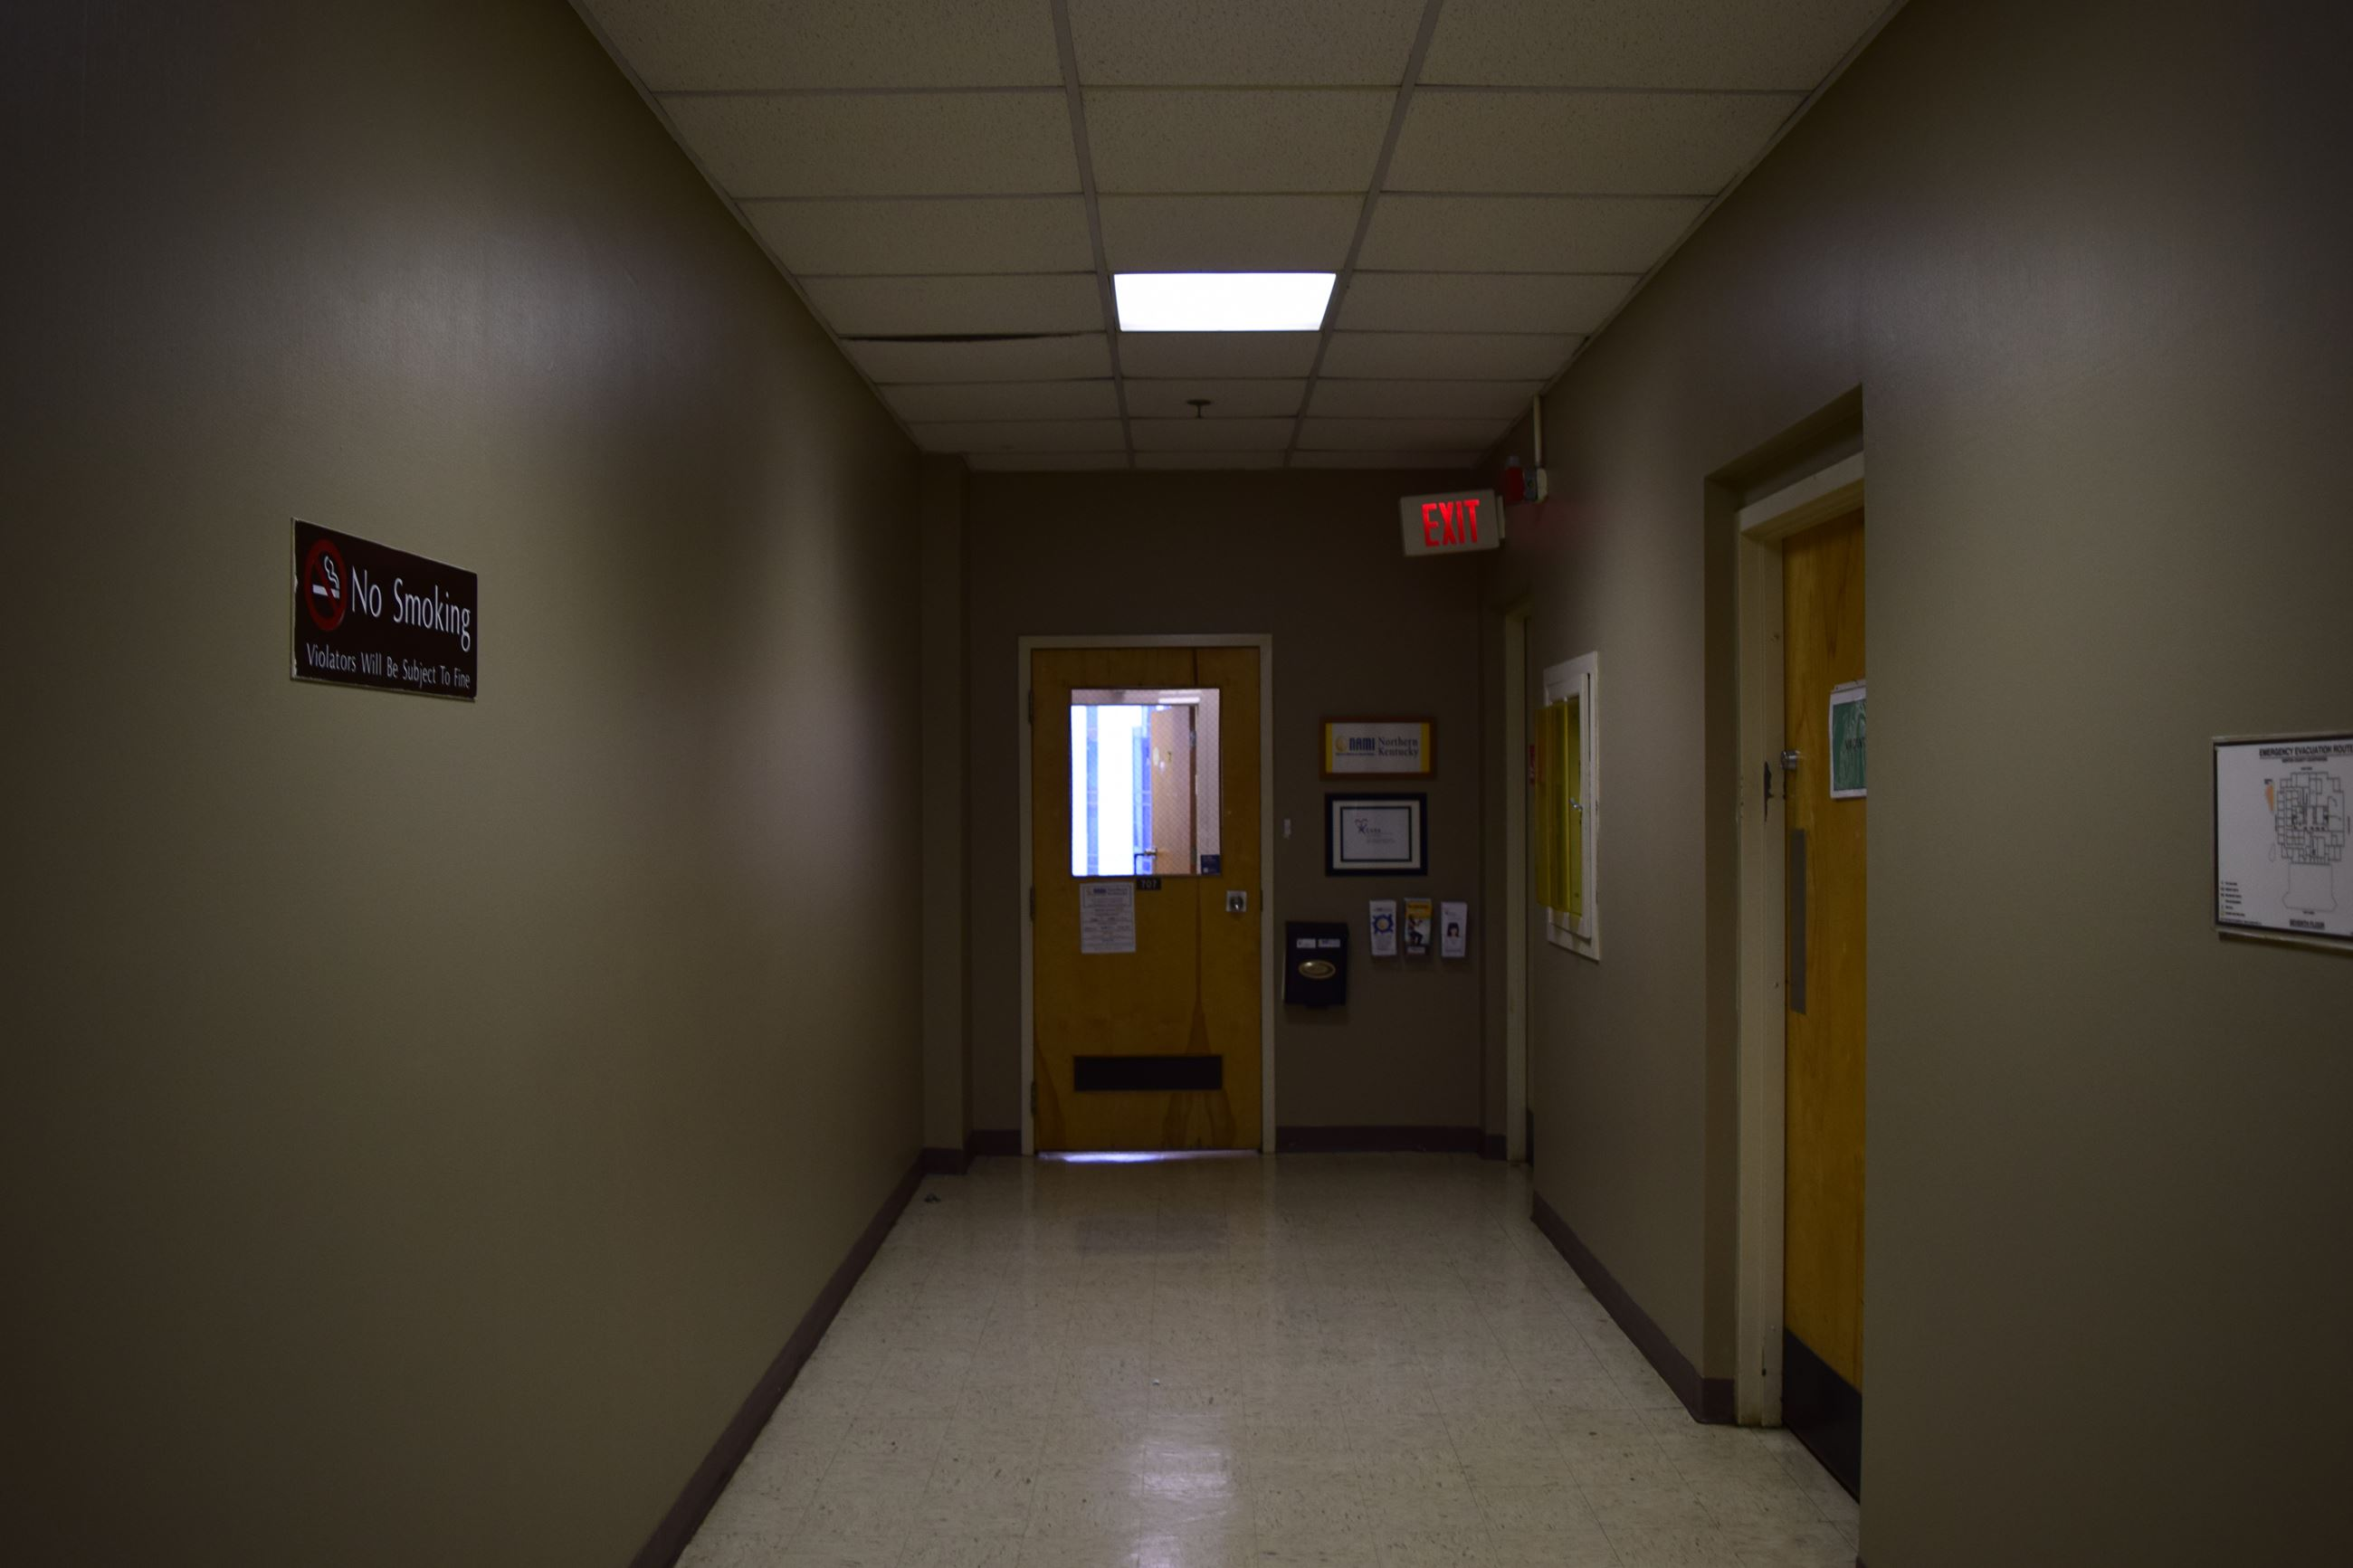 Hallway on 7th floor